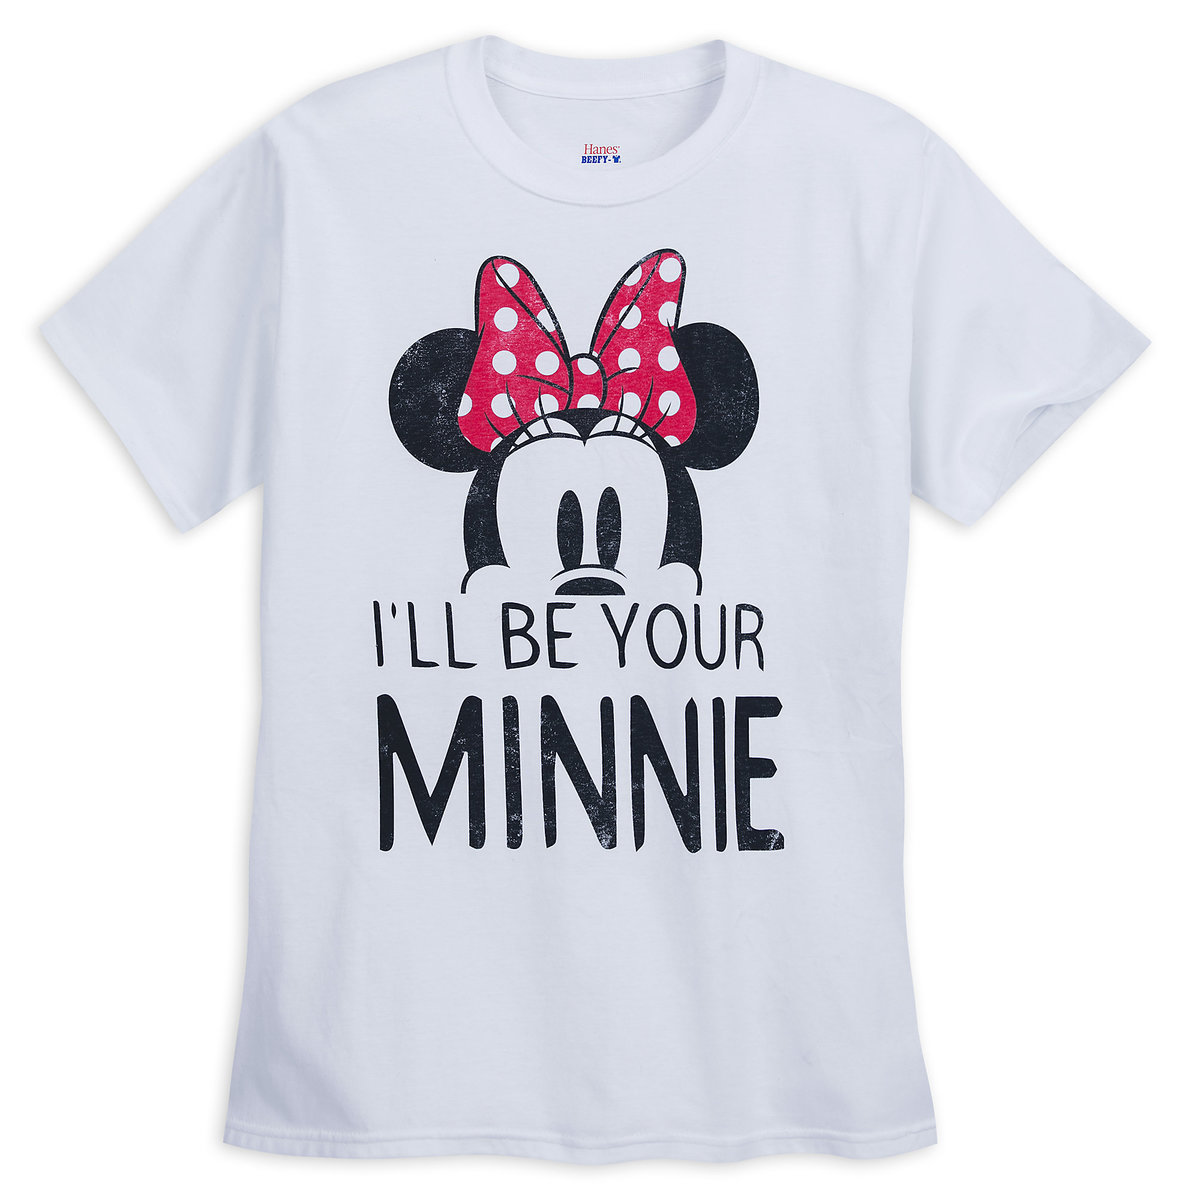 b0119e8f4 Minnie Mouse ''I'll Be Your Minnie'' Couples T-Shirt for Women ...